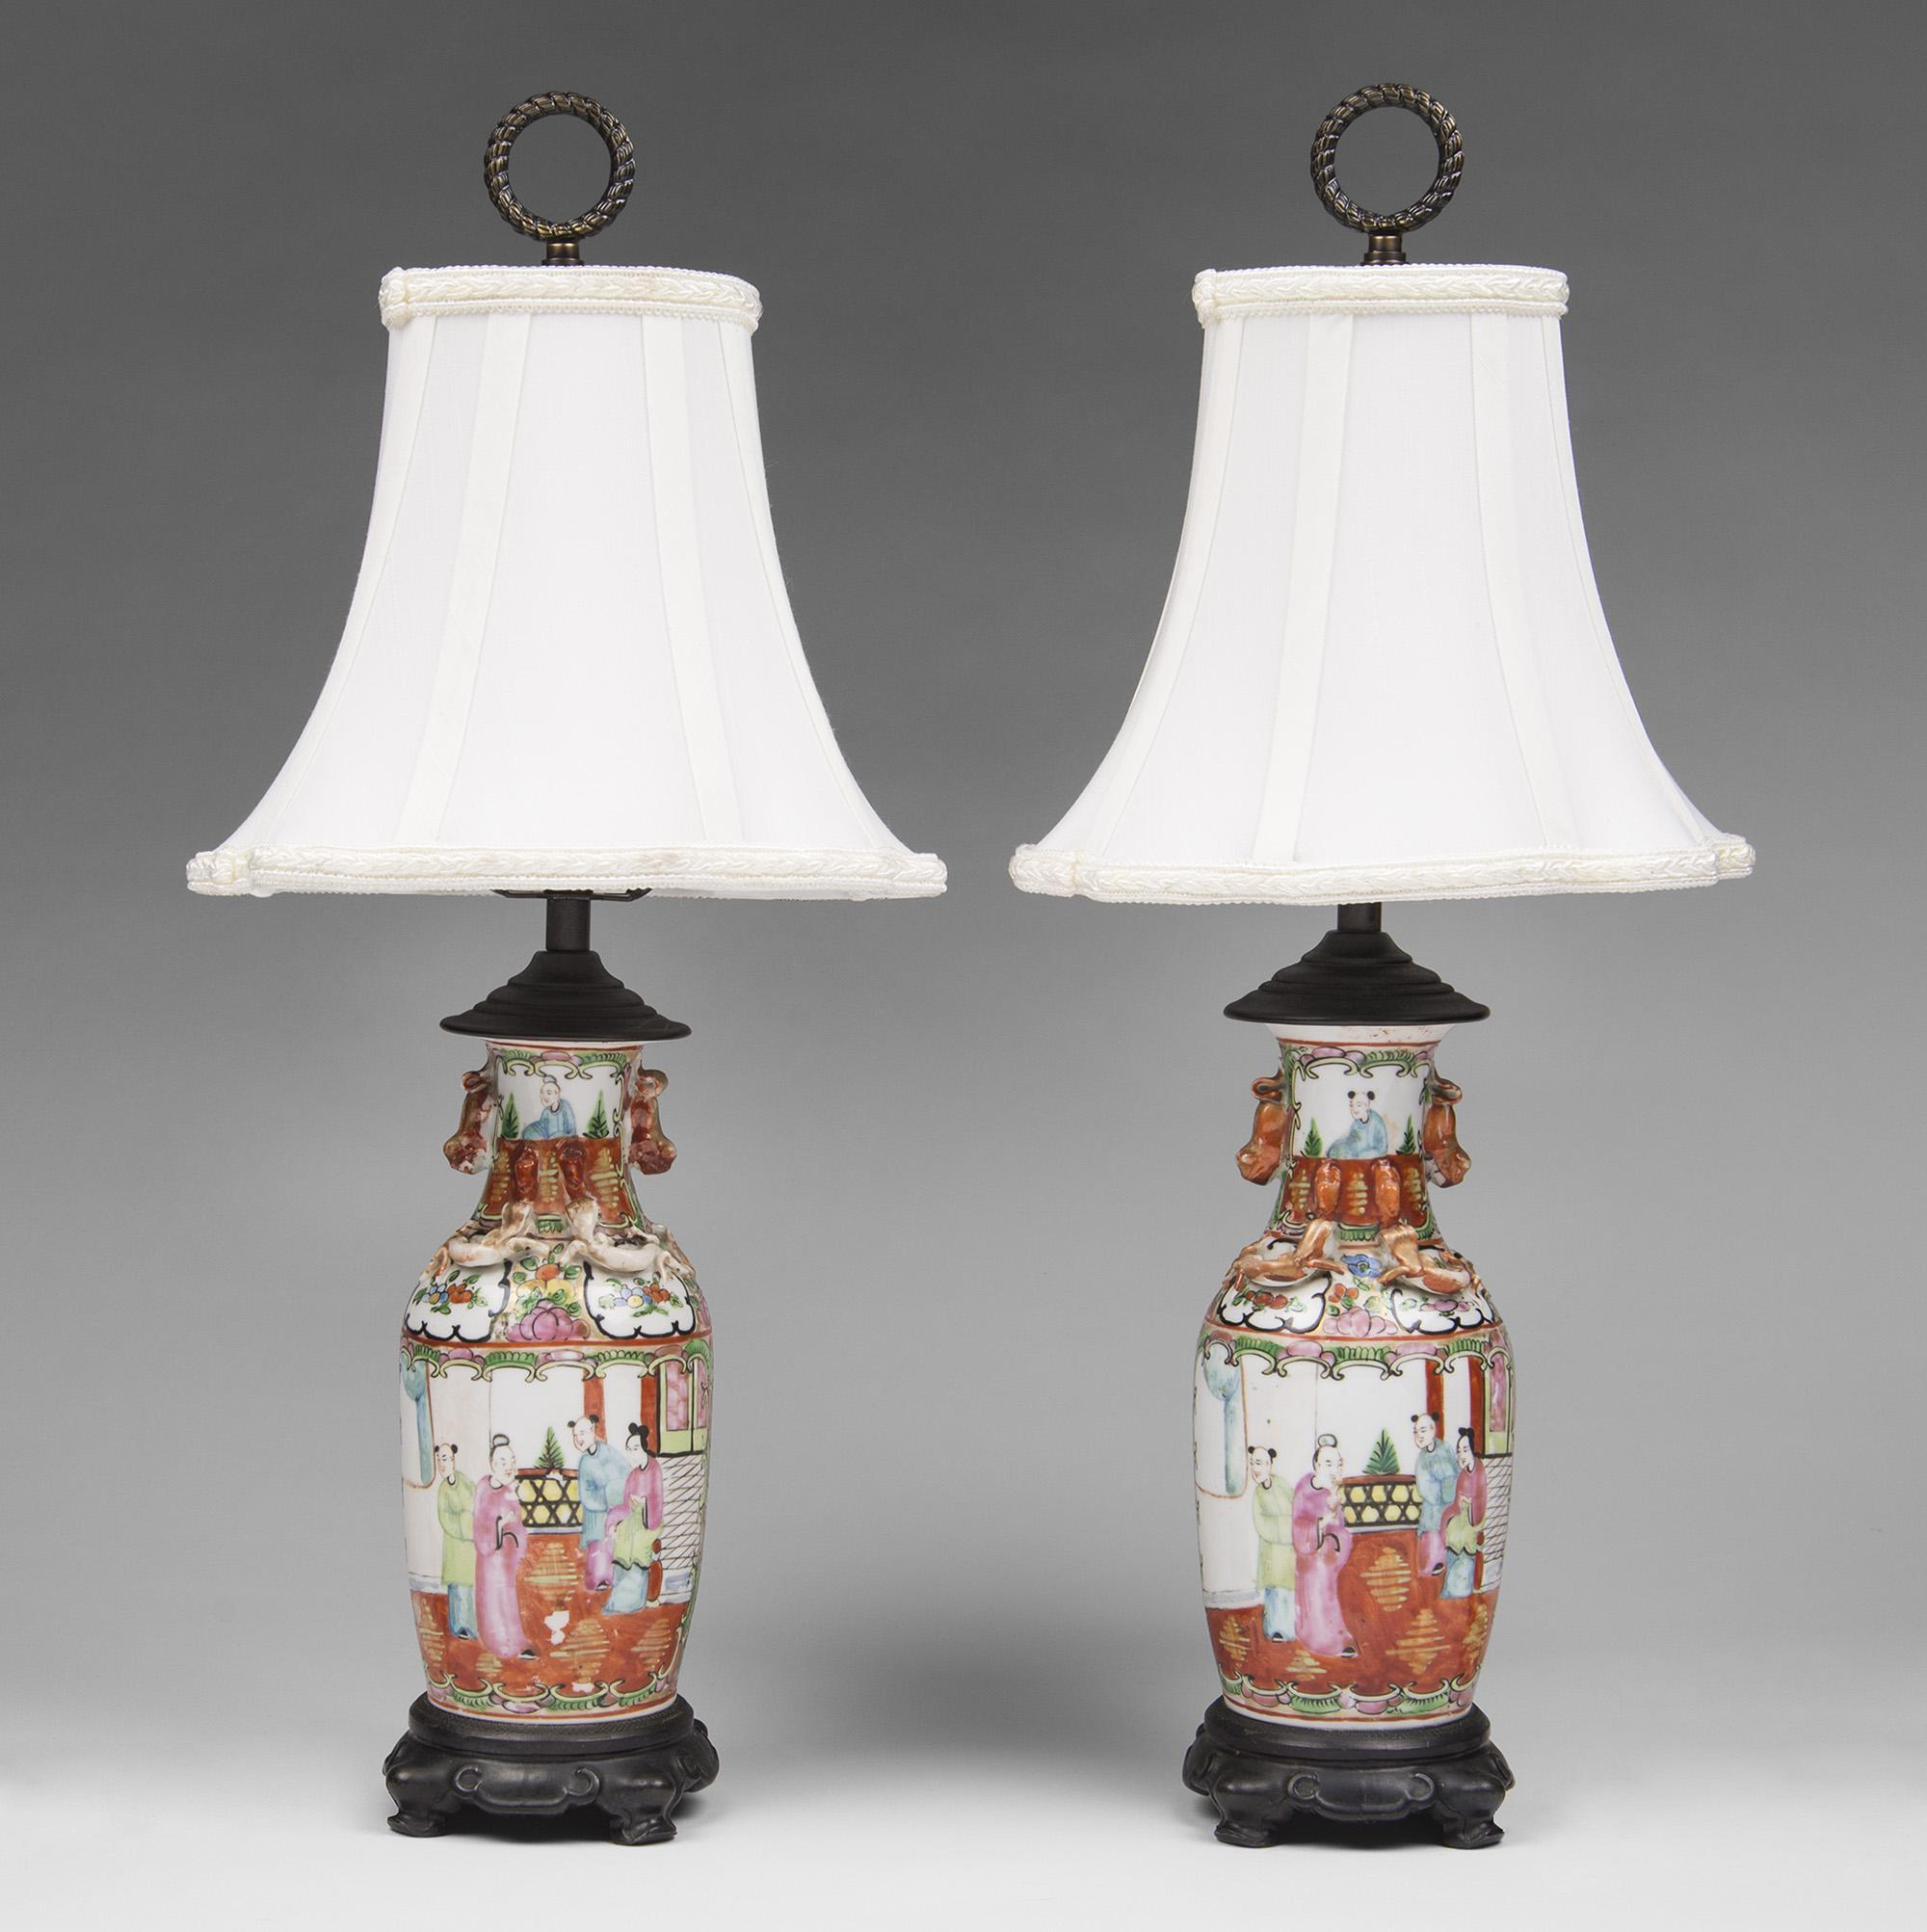 Pair of Matching 19th C. Famille Rose Chinese Export Lamps